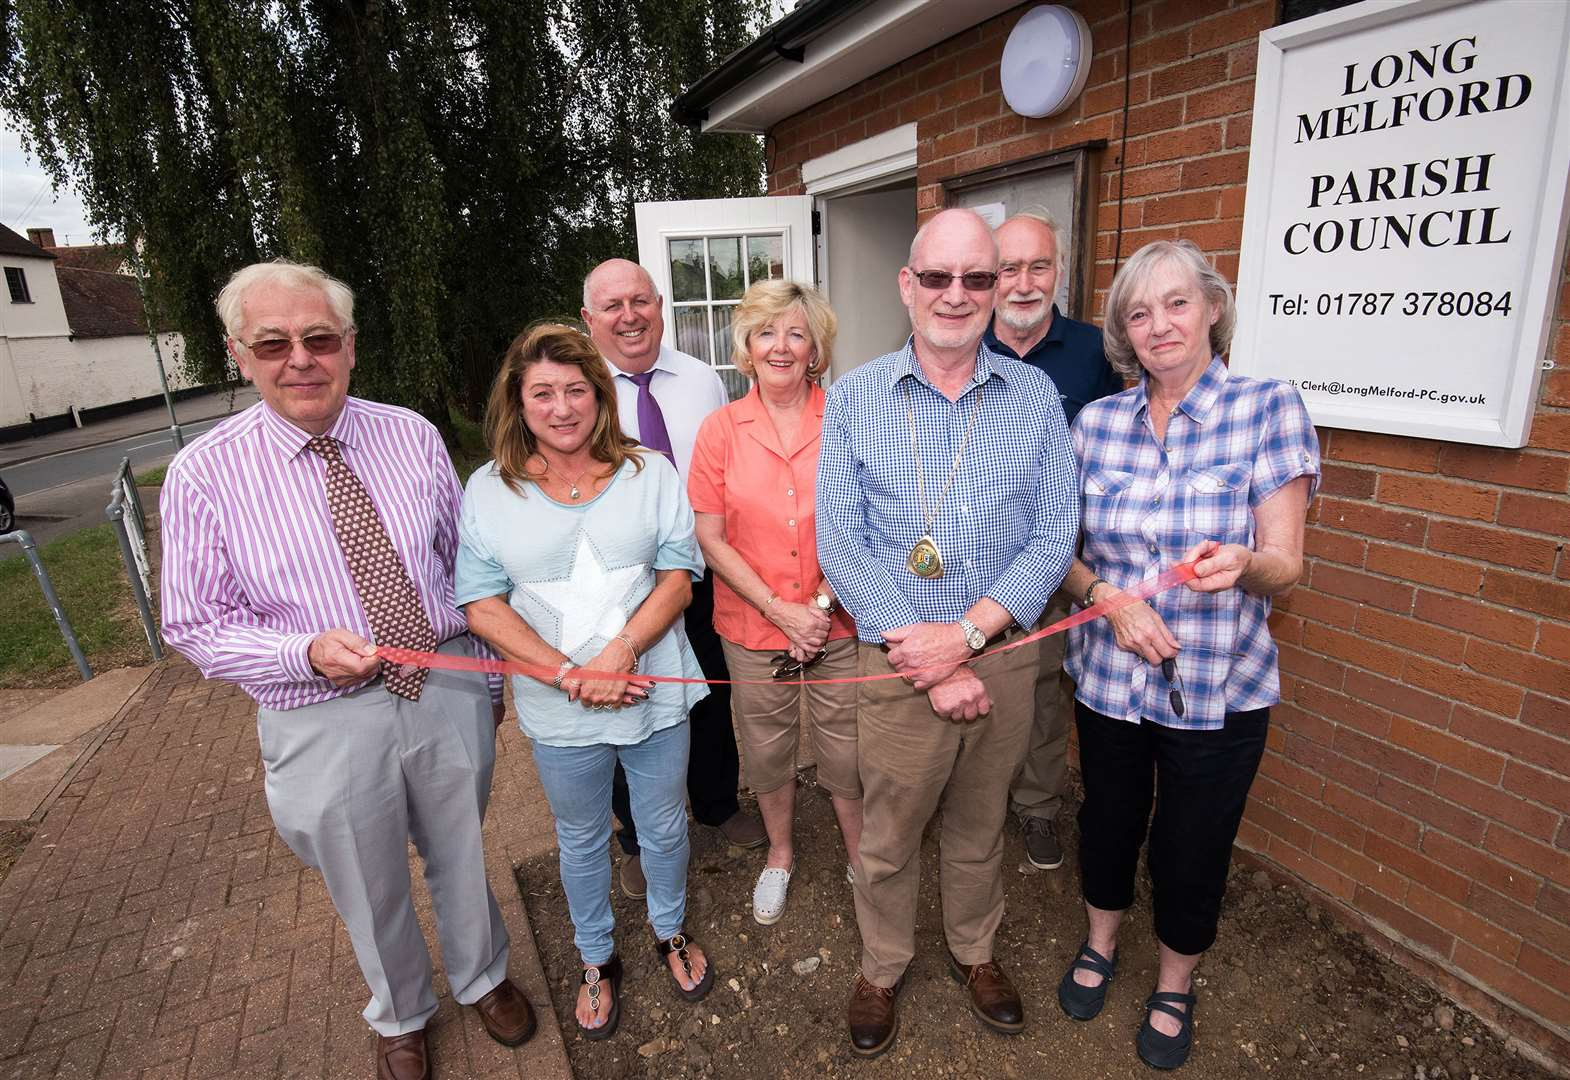 Long Melford Parish Council begins new era after moving into new office